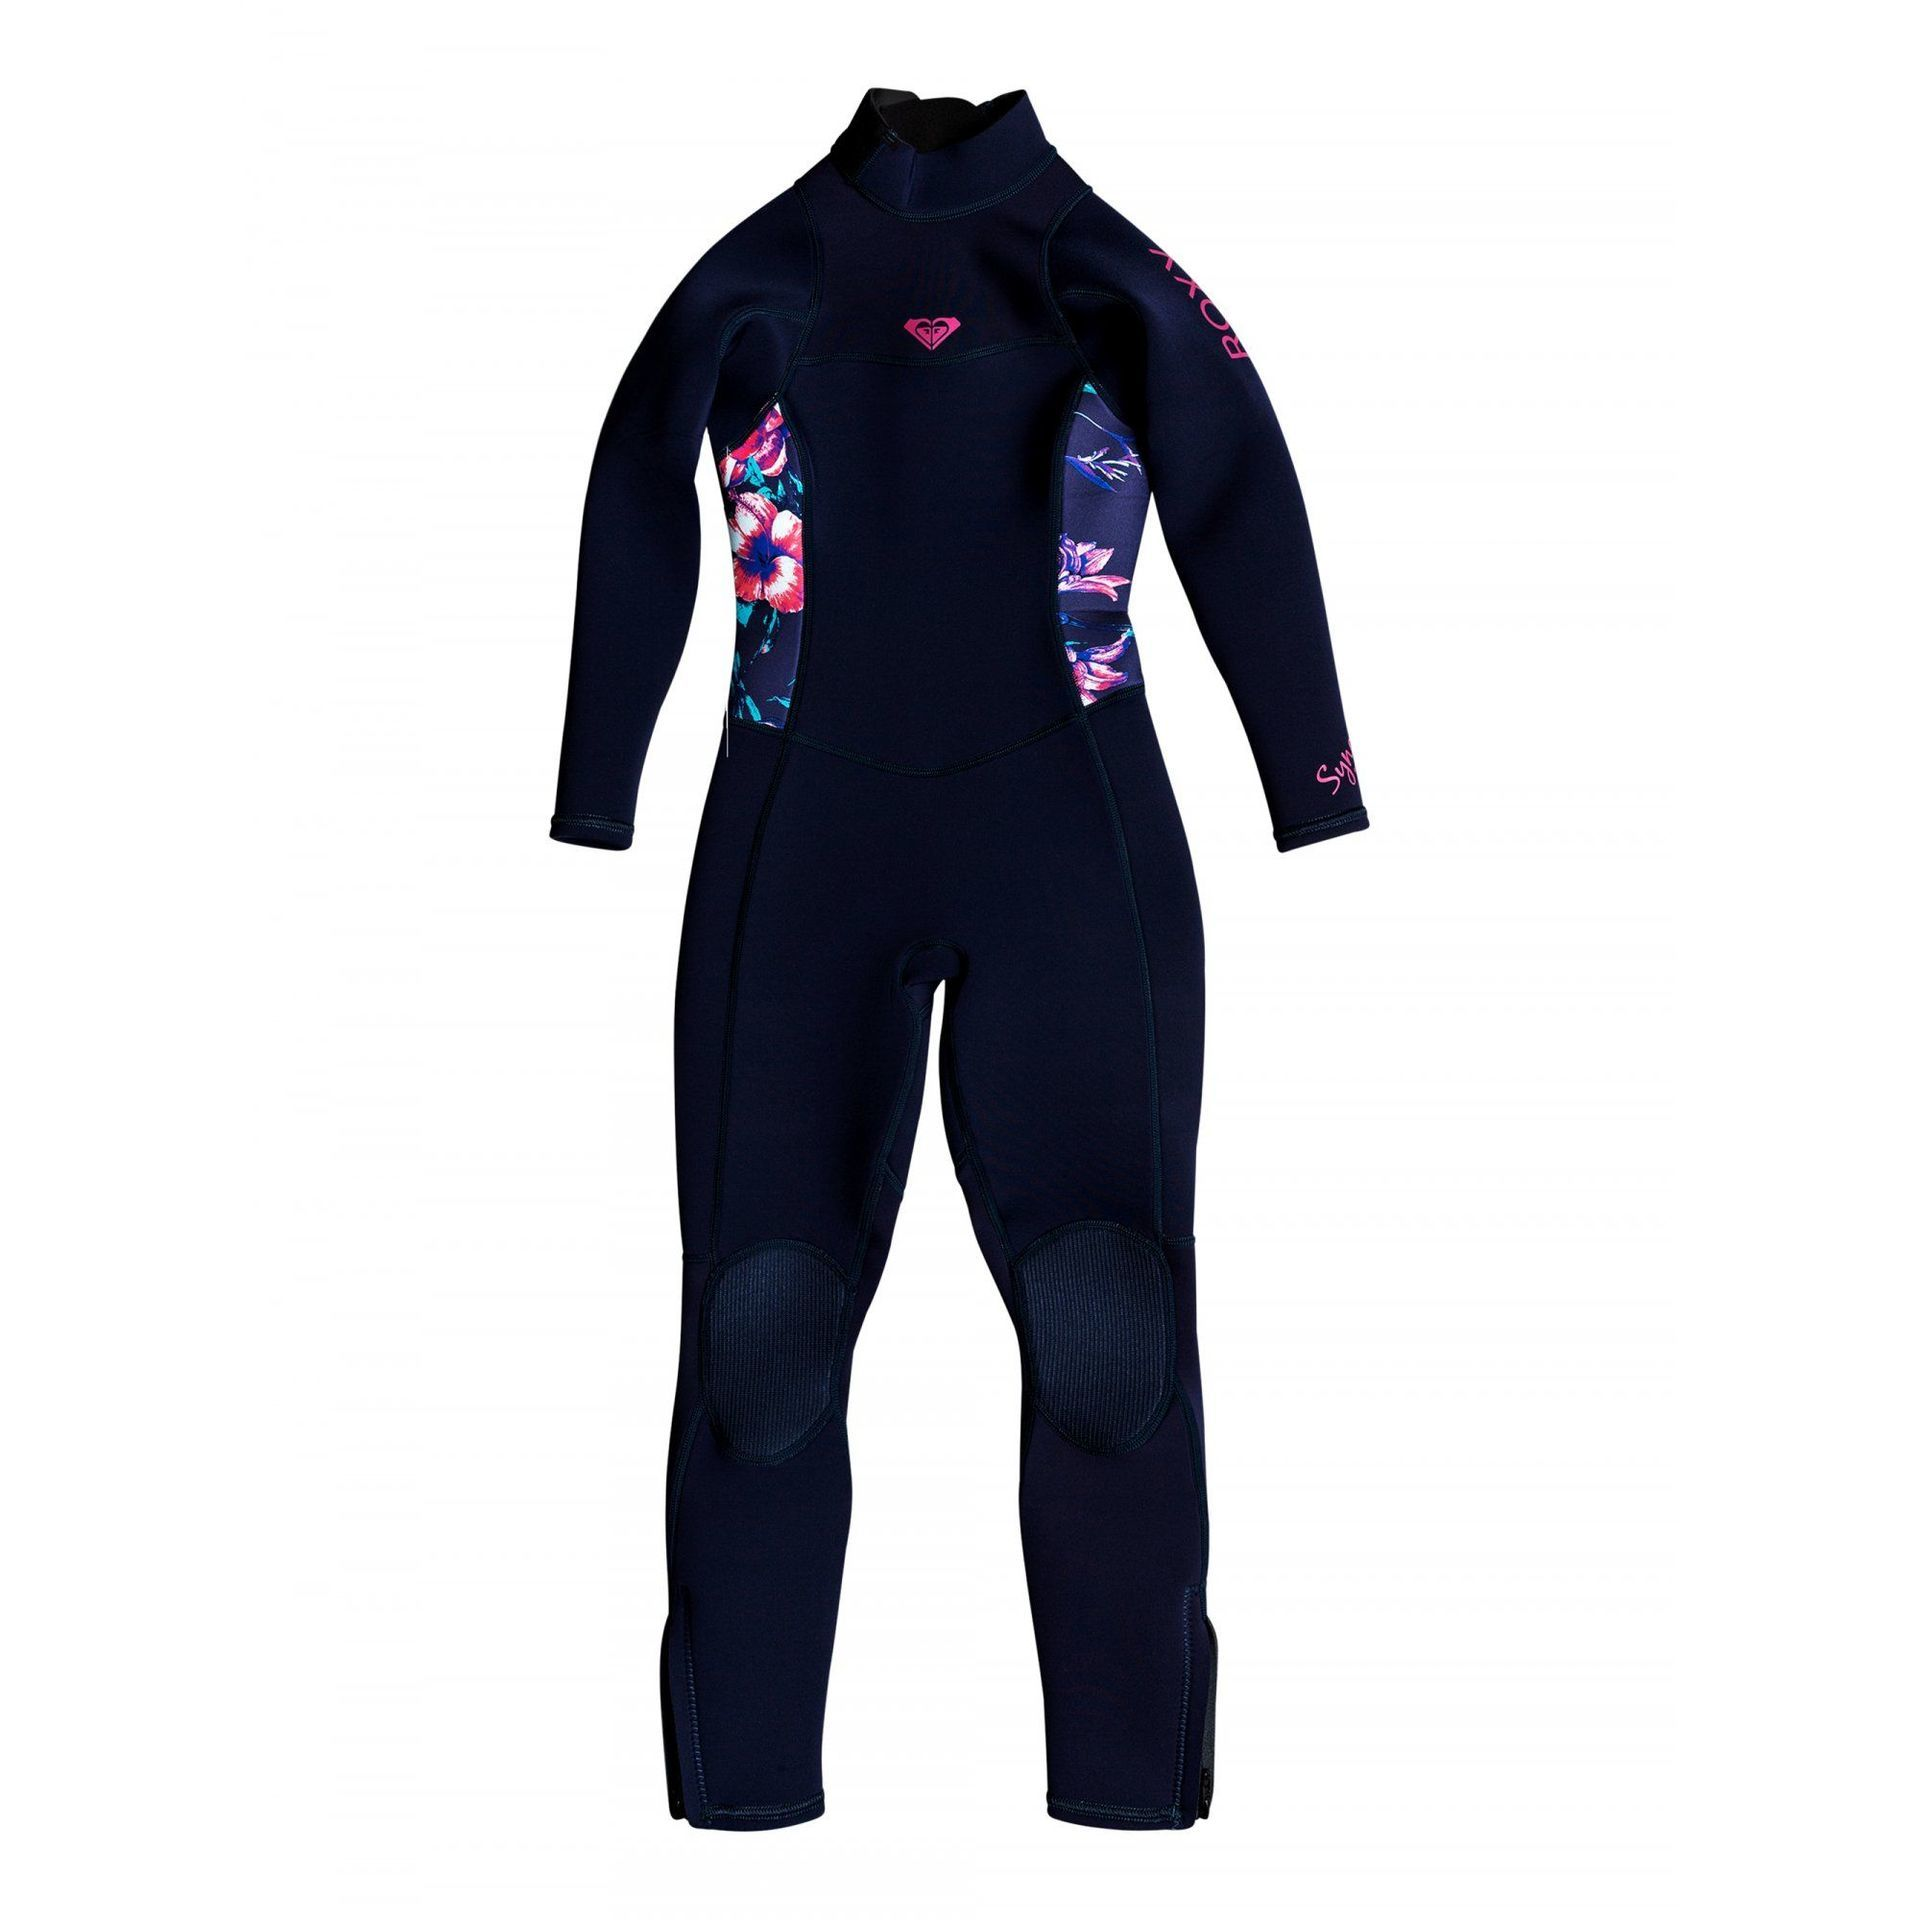 PIANKA NEOPRENOWA ROXY GIRLS 2-6 SYNCRO 3|2MM BACK ZIP BSN0